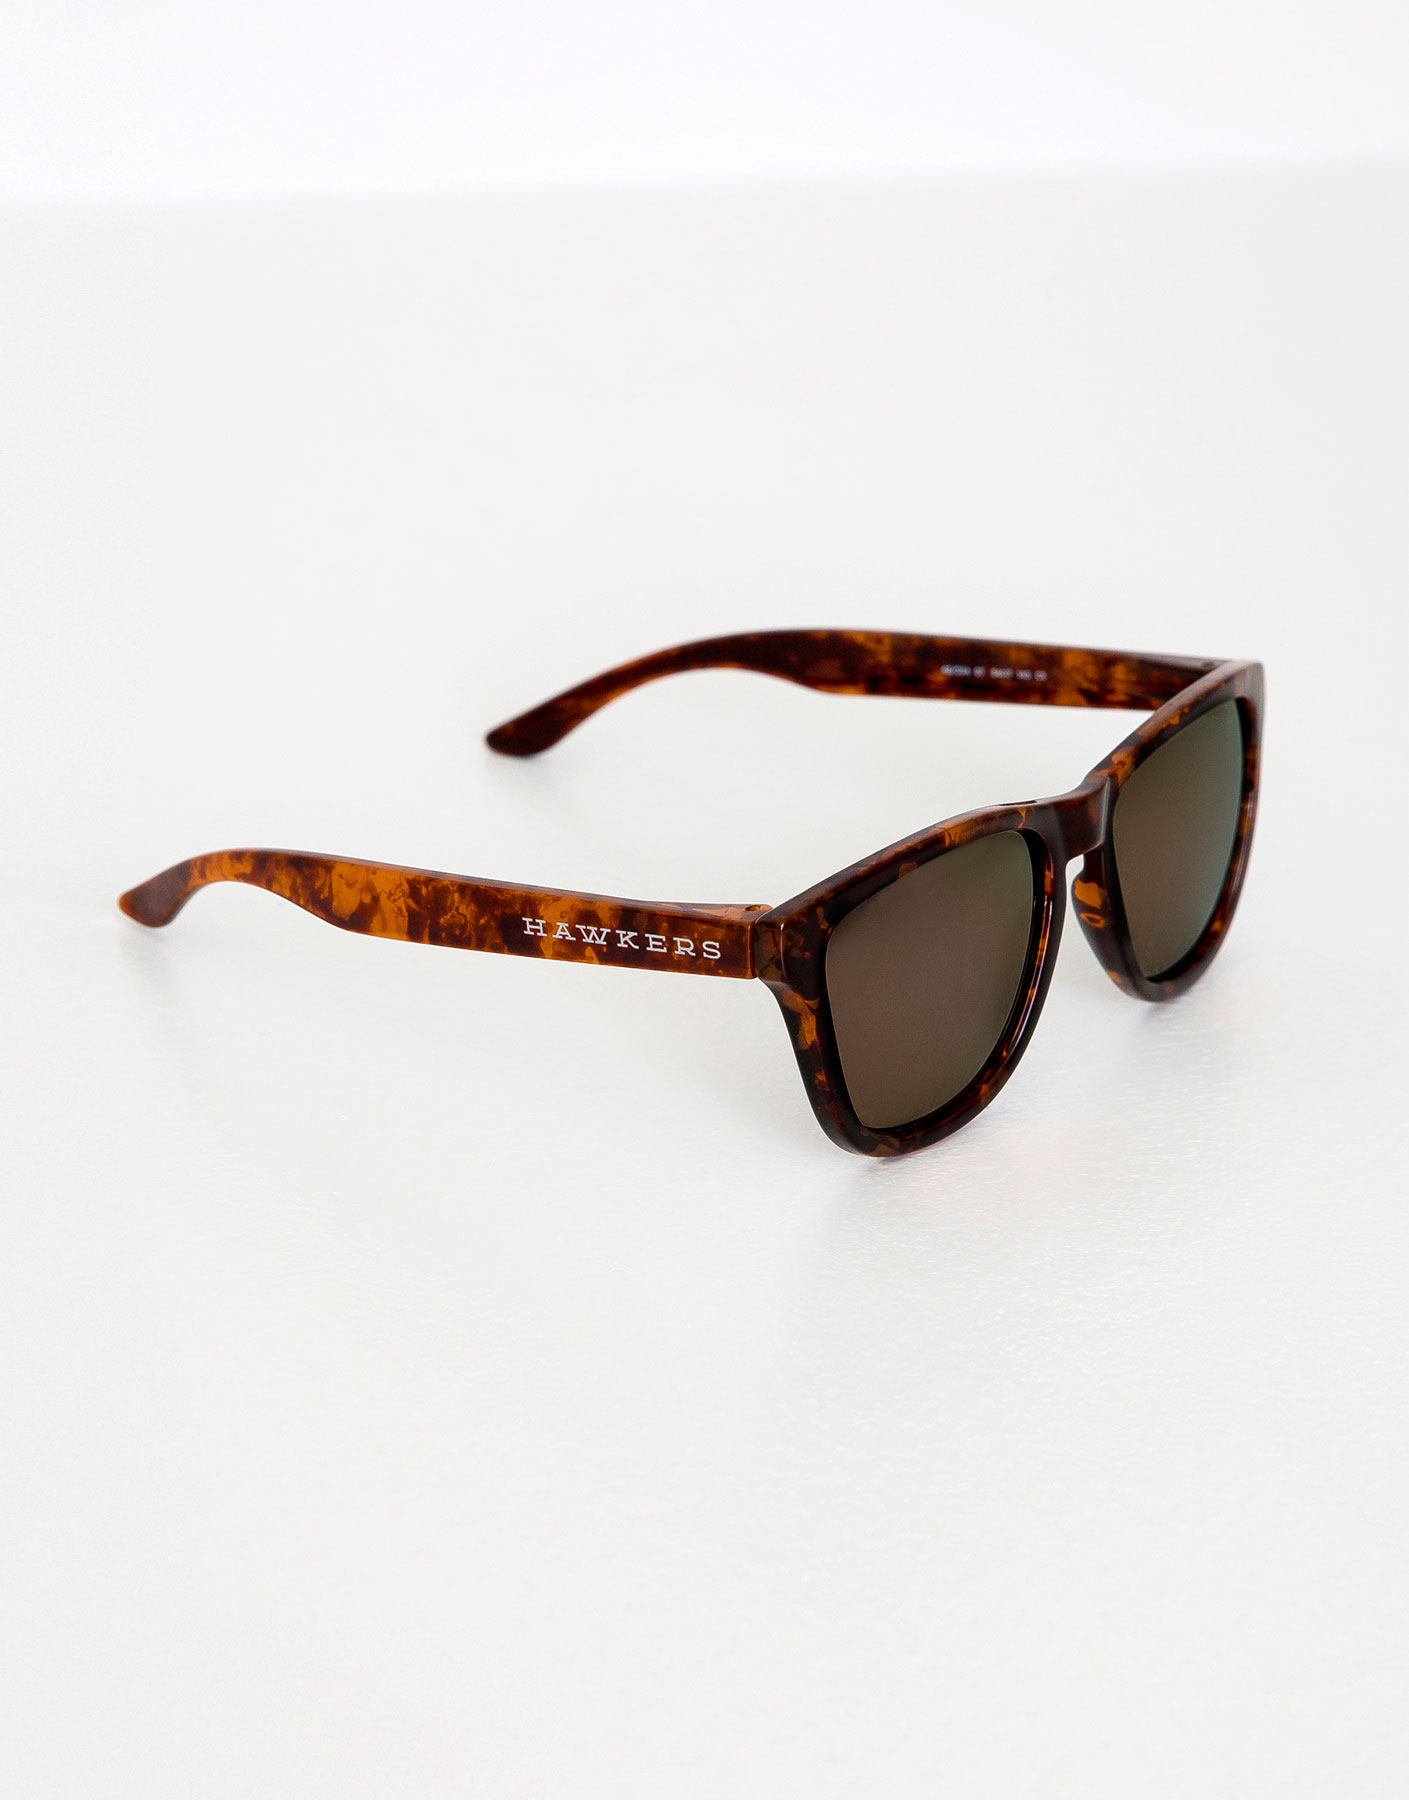 Lentes de sol hawkers carei dark one